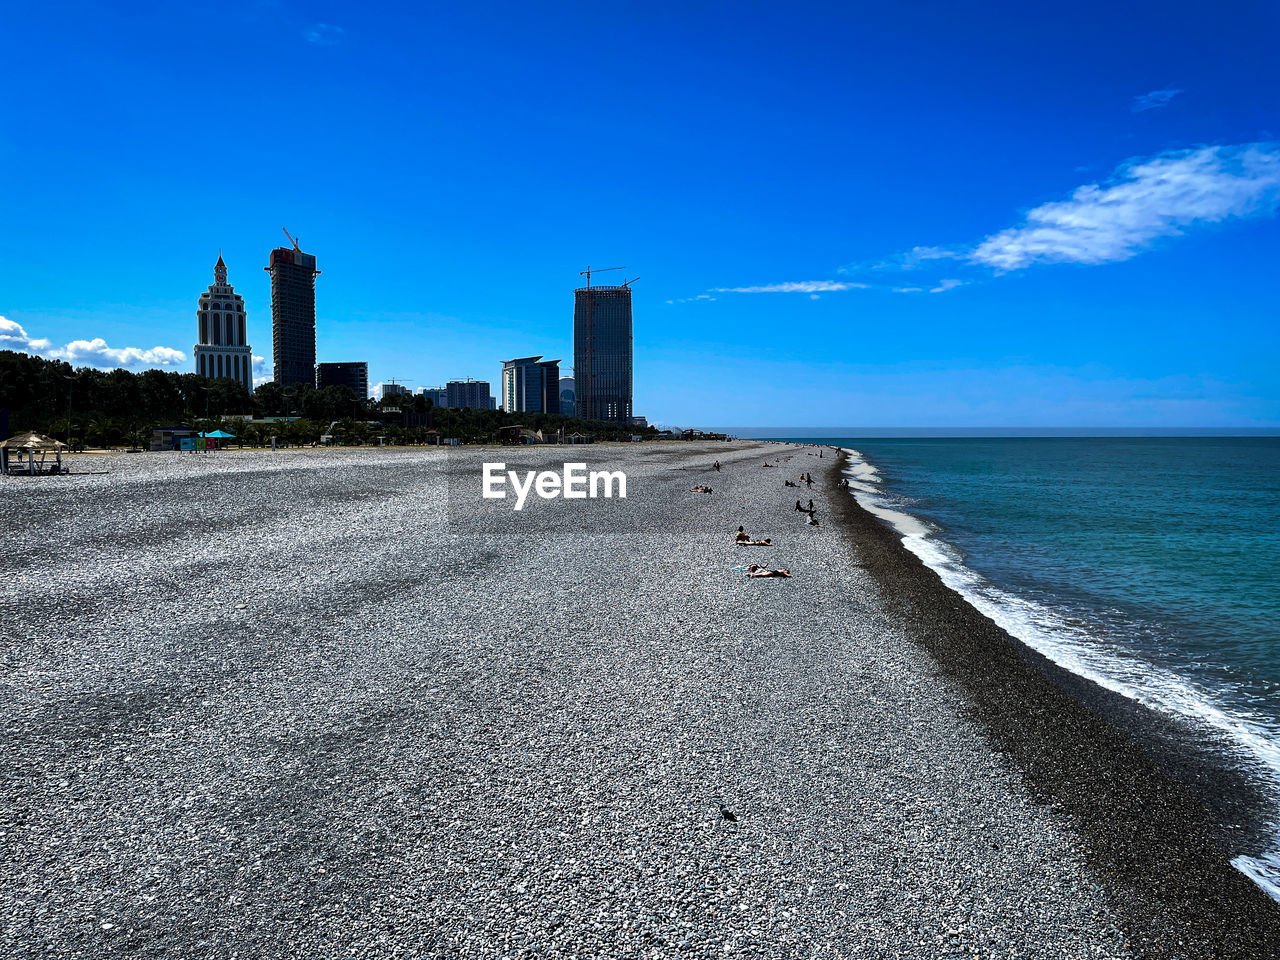 SCENIC VIEW OF SEA AGAINST SKY IN CITY